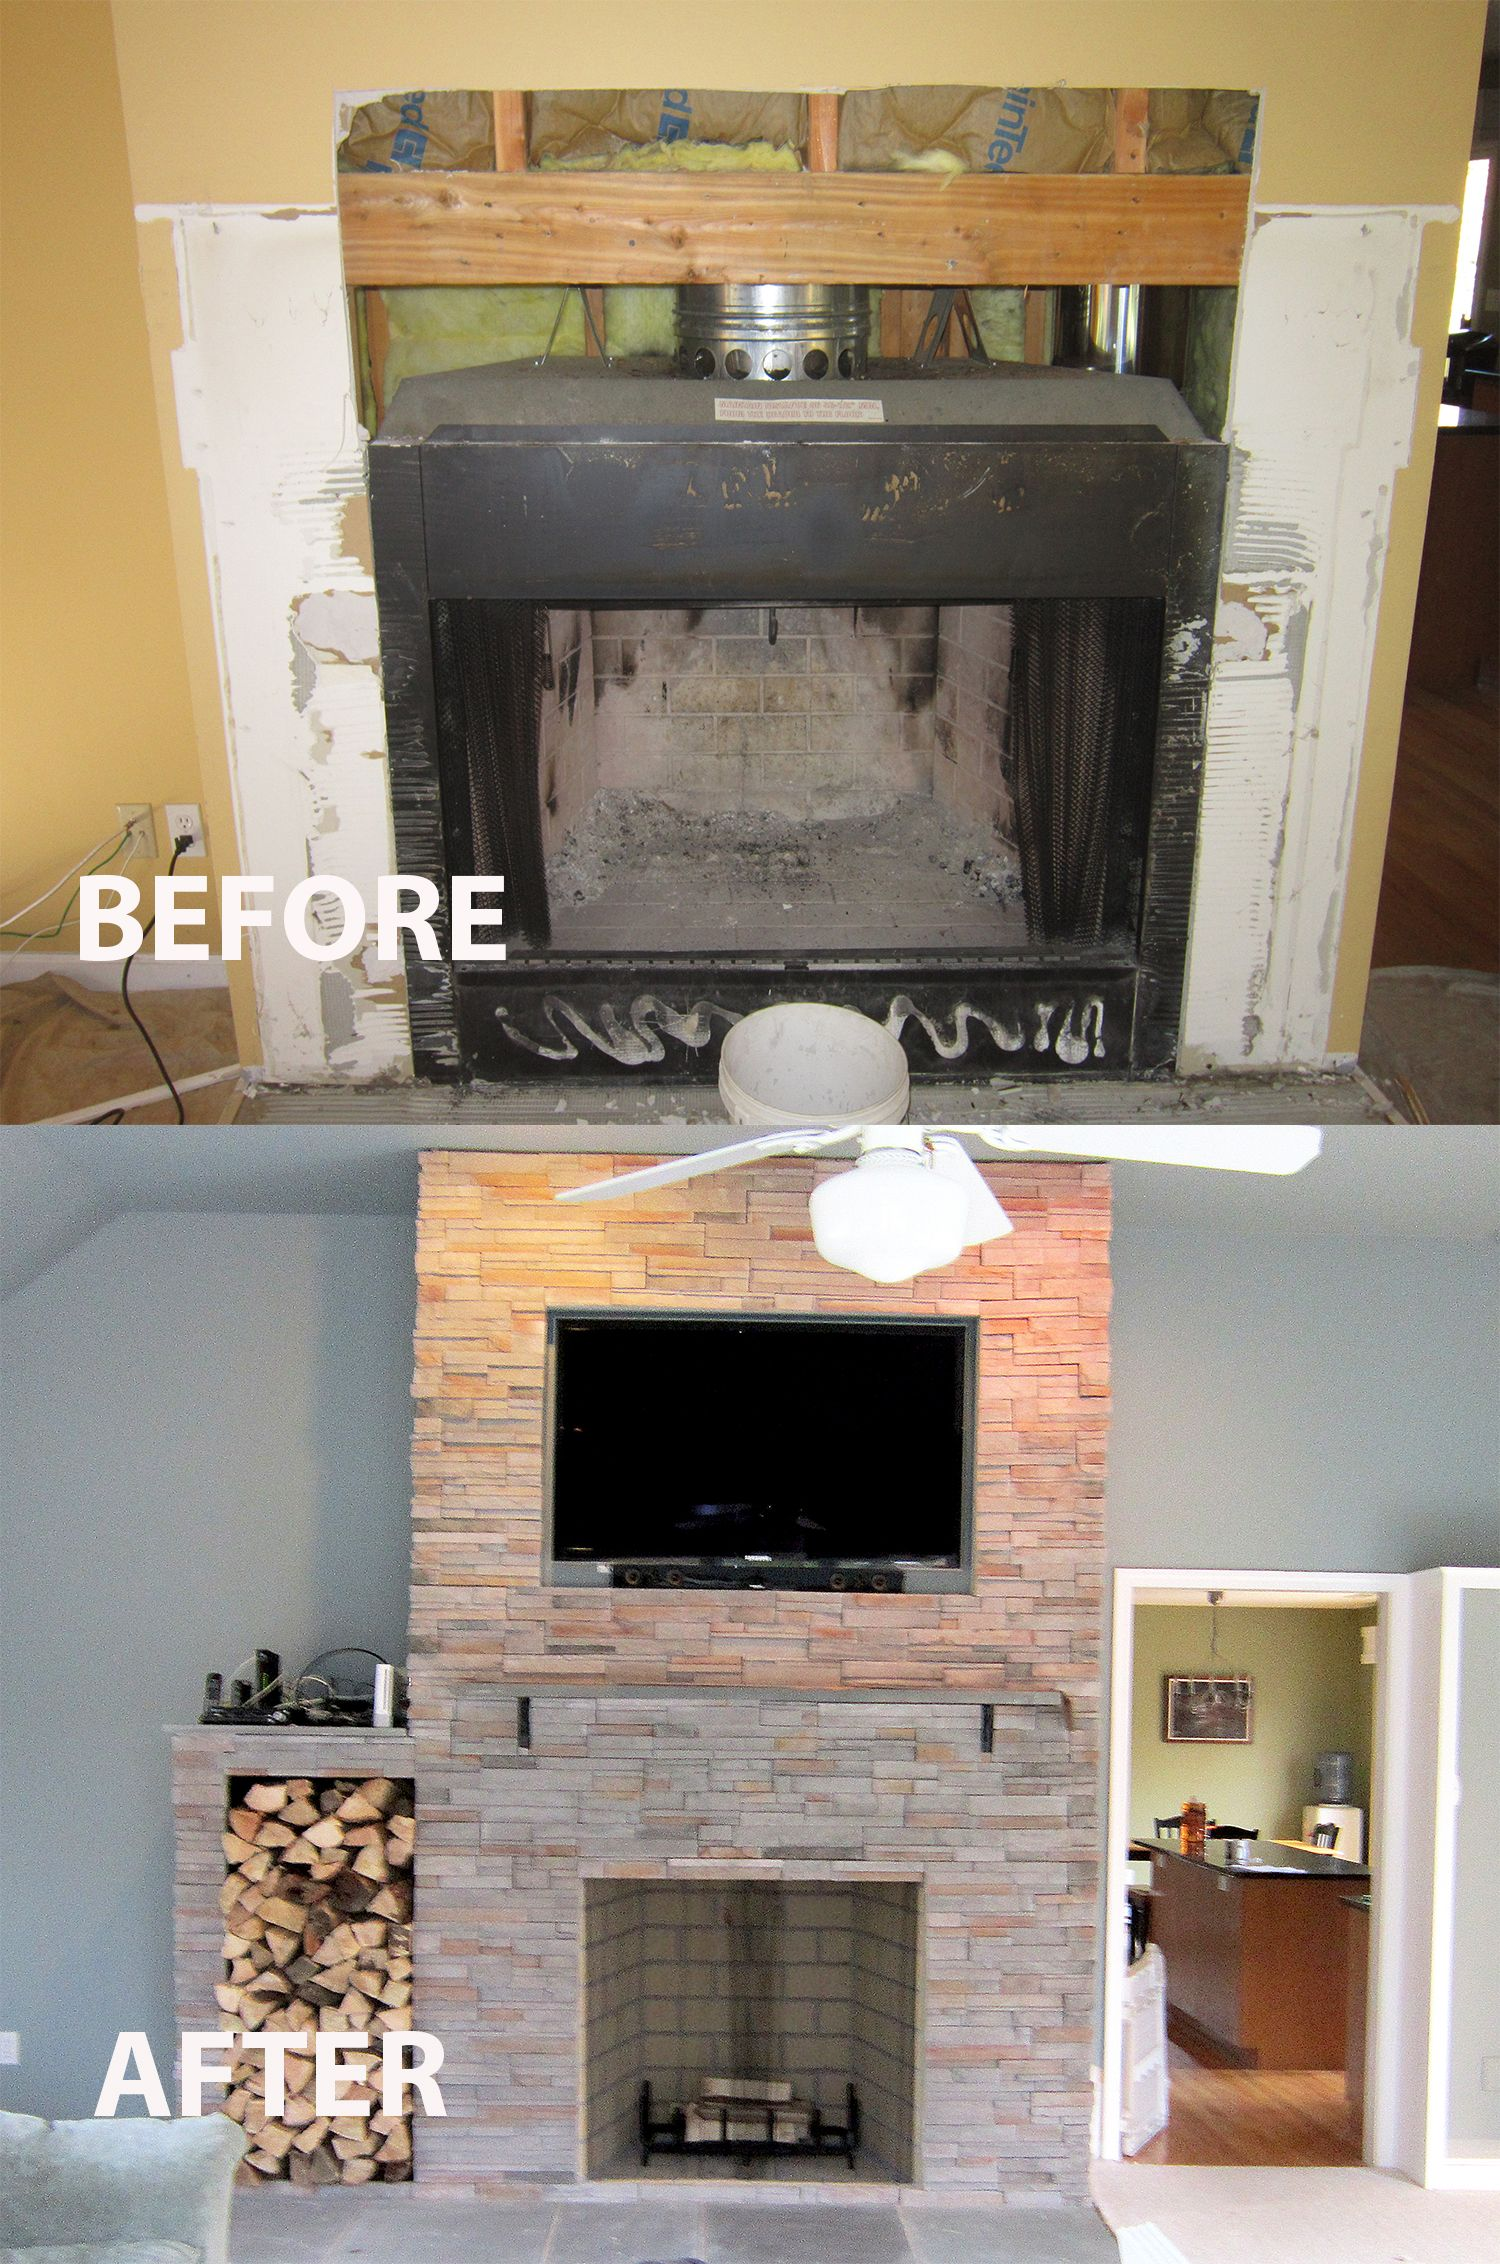 Our Sandy Hook installation and remodel before & after a new 42